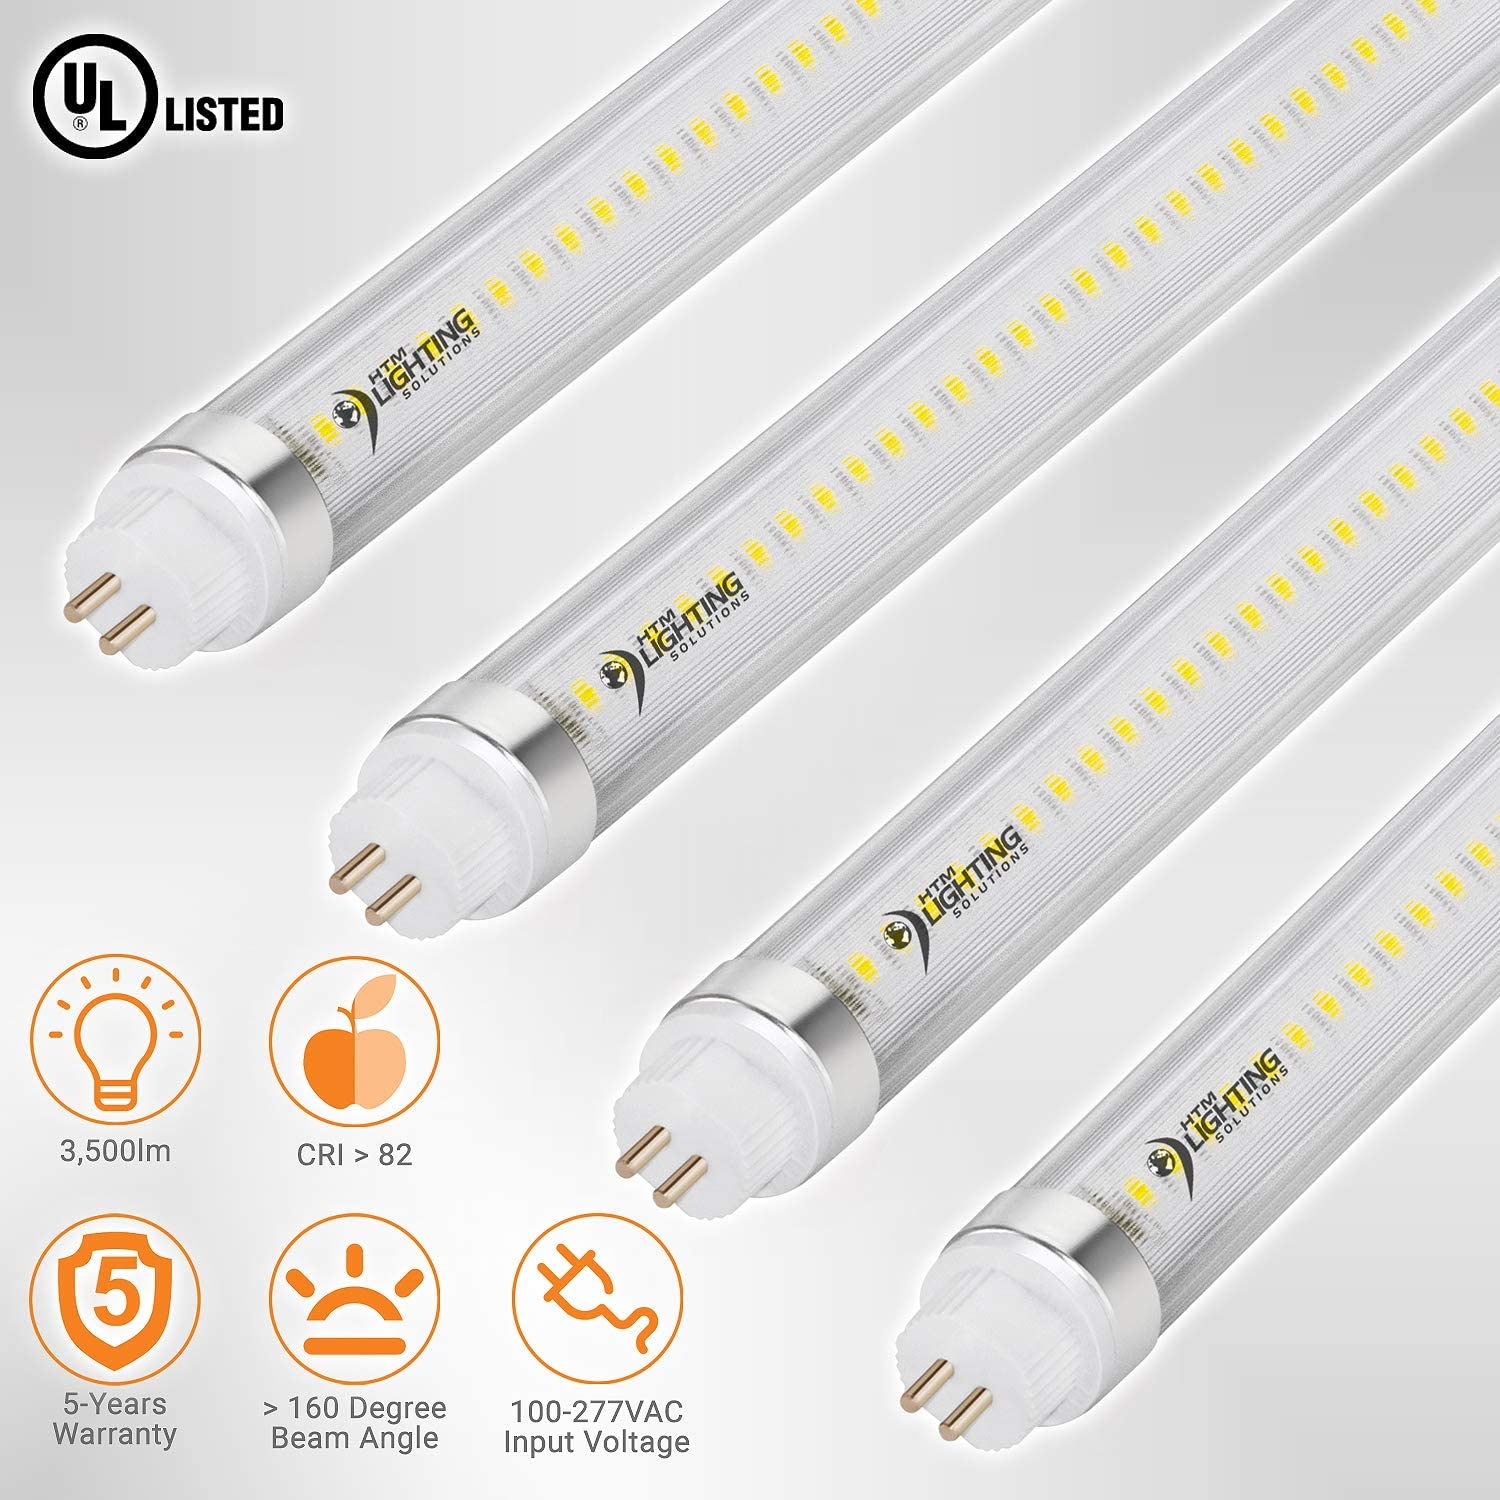 Clear Lens 3500 lm Cool White 5000K 24-Pack Dual-End Powered 54W T5 Equal 4ft 24W T5 High Output LED Tube Light 100-277V 45.25 LED Shop Light Ballast Bypass G5 Mini Base UL-Listed